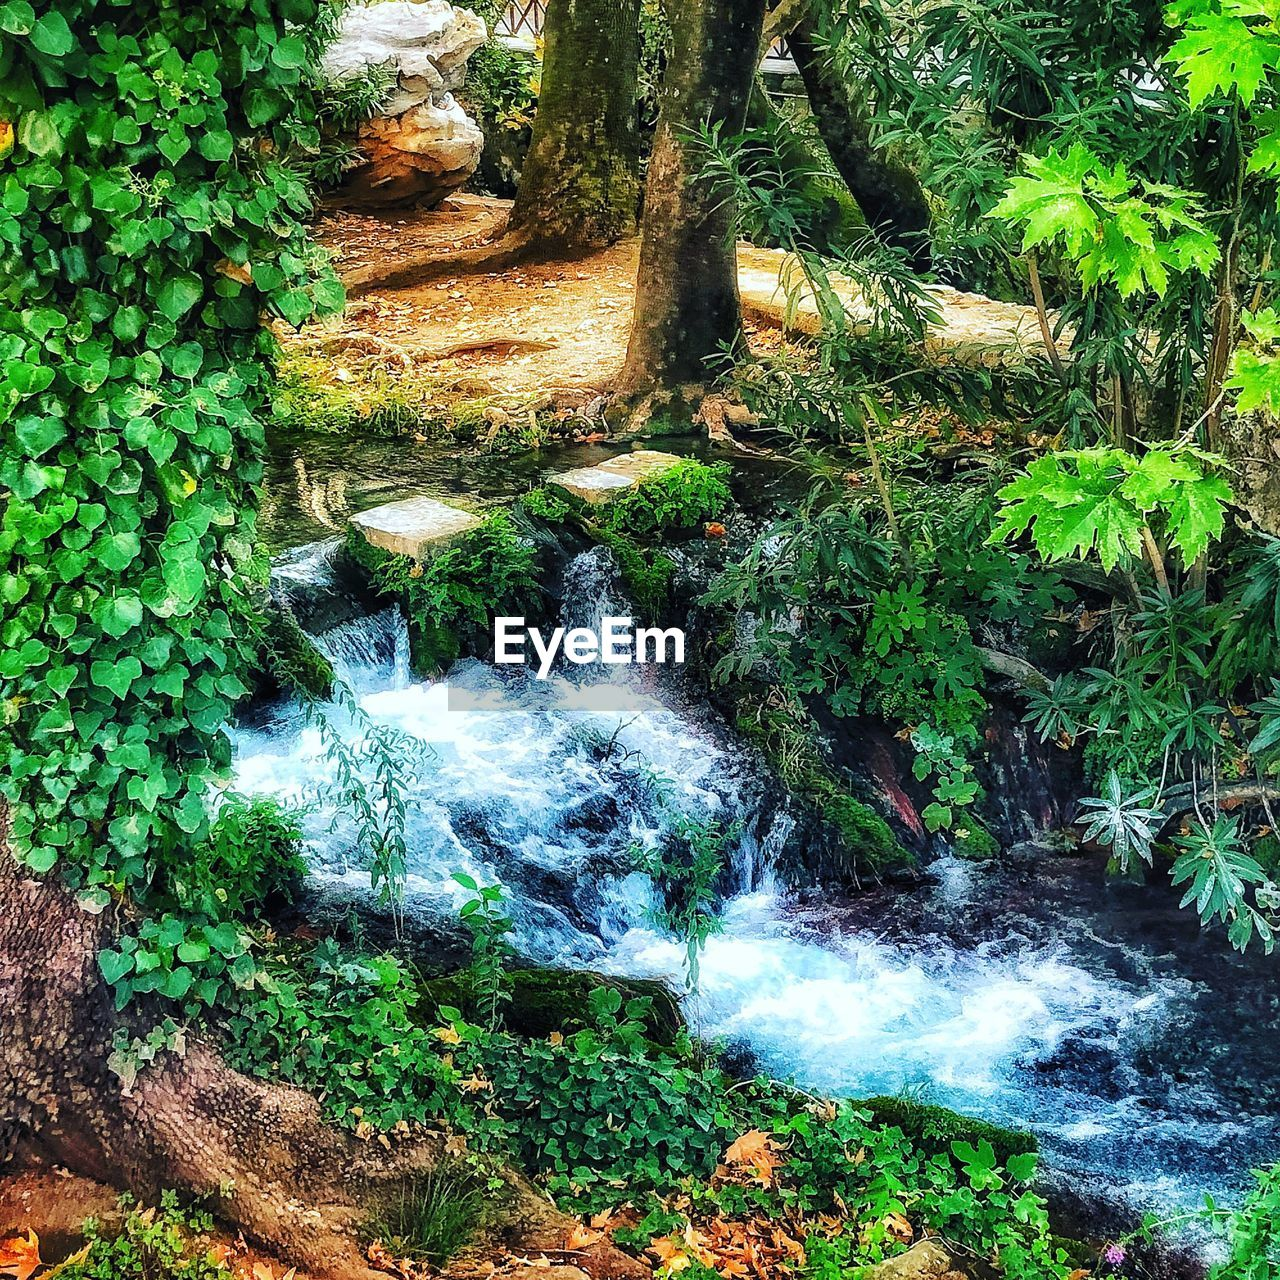 plant, tree, forest, water, beauty in nature, land, nature, flowing water, scenics - nature, growth, motion, no people, green color, day, tranquility, waterfall, long exposure, lush foliage, blurred motion, flowing, outdoors, rainforest, woodland, power in nature